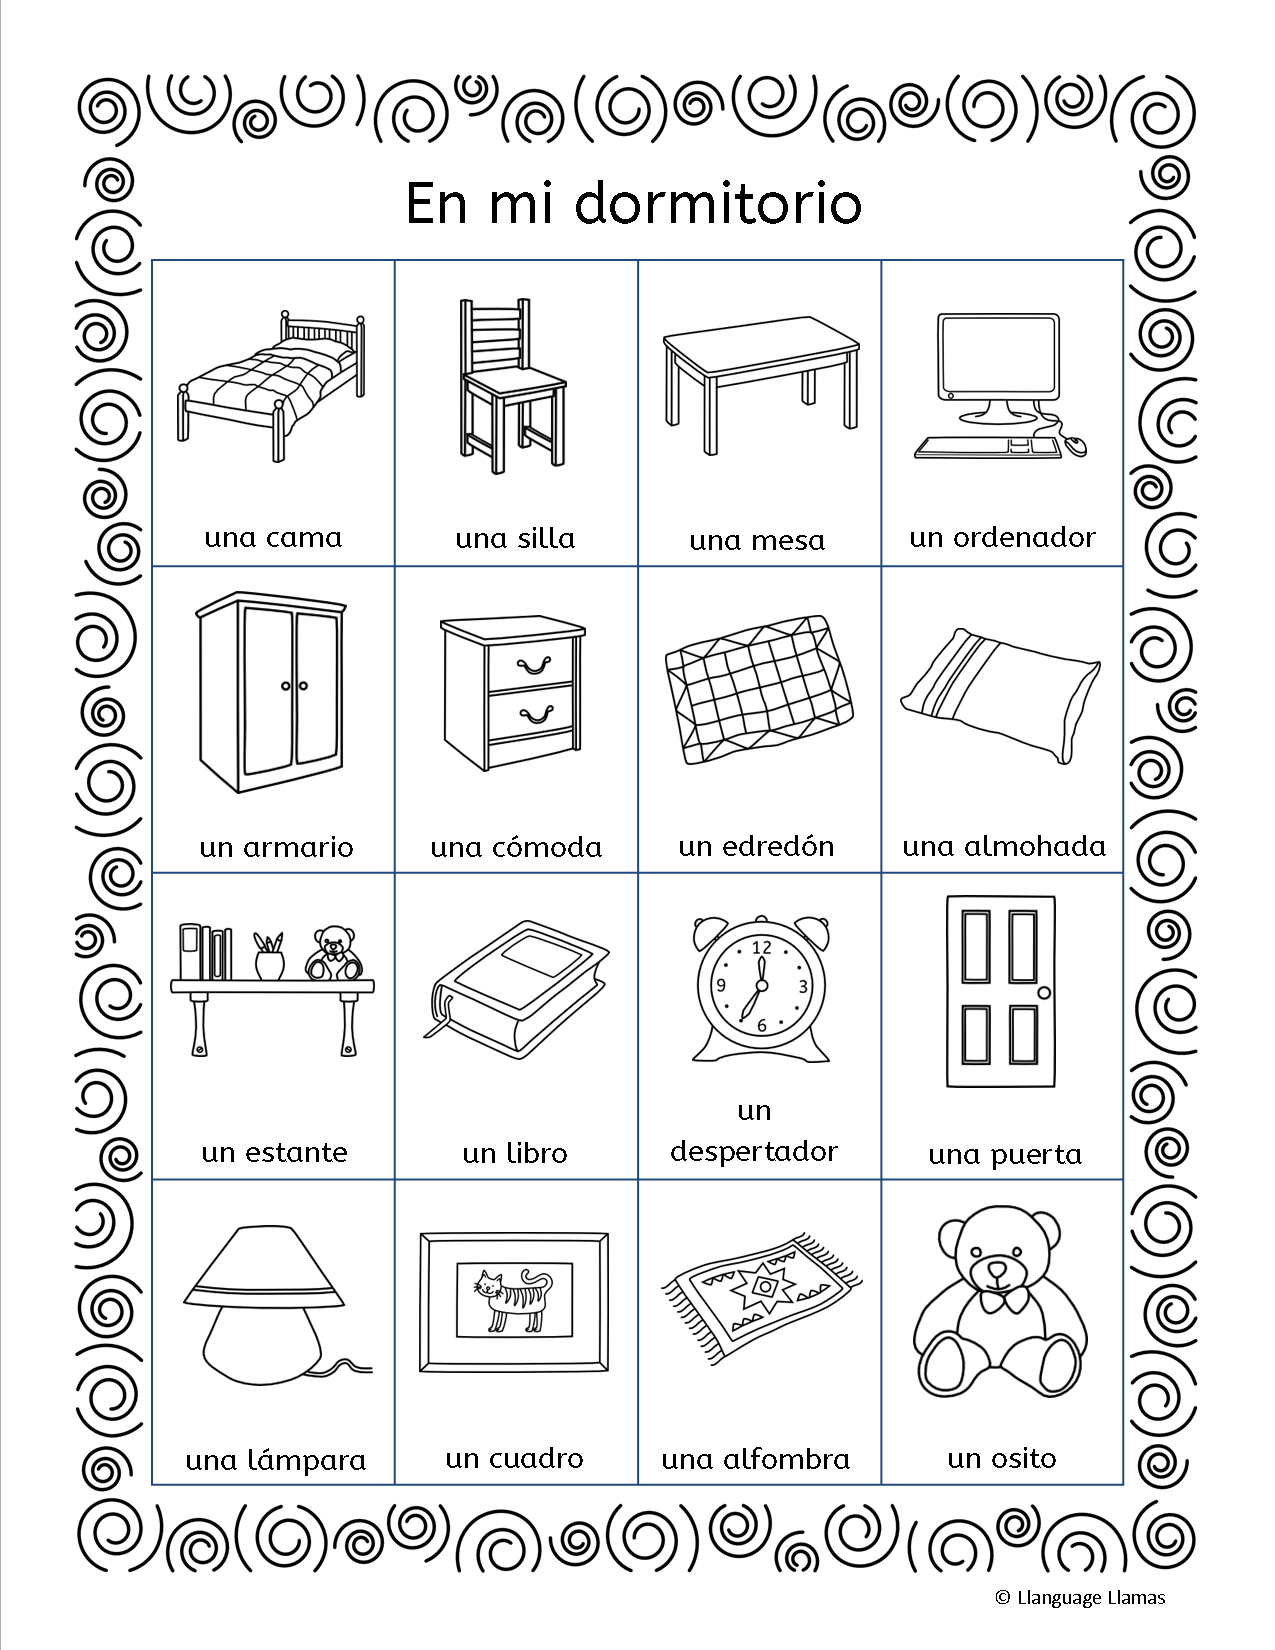 Mi Dormitorio - Flashcards, word wall, handout, worksheets, flip books, activities and games - this 77 page pack contains everything you need to teach 16 Spanish words for talking about 'my bedroom'.